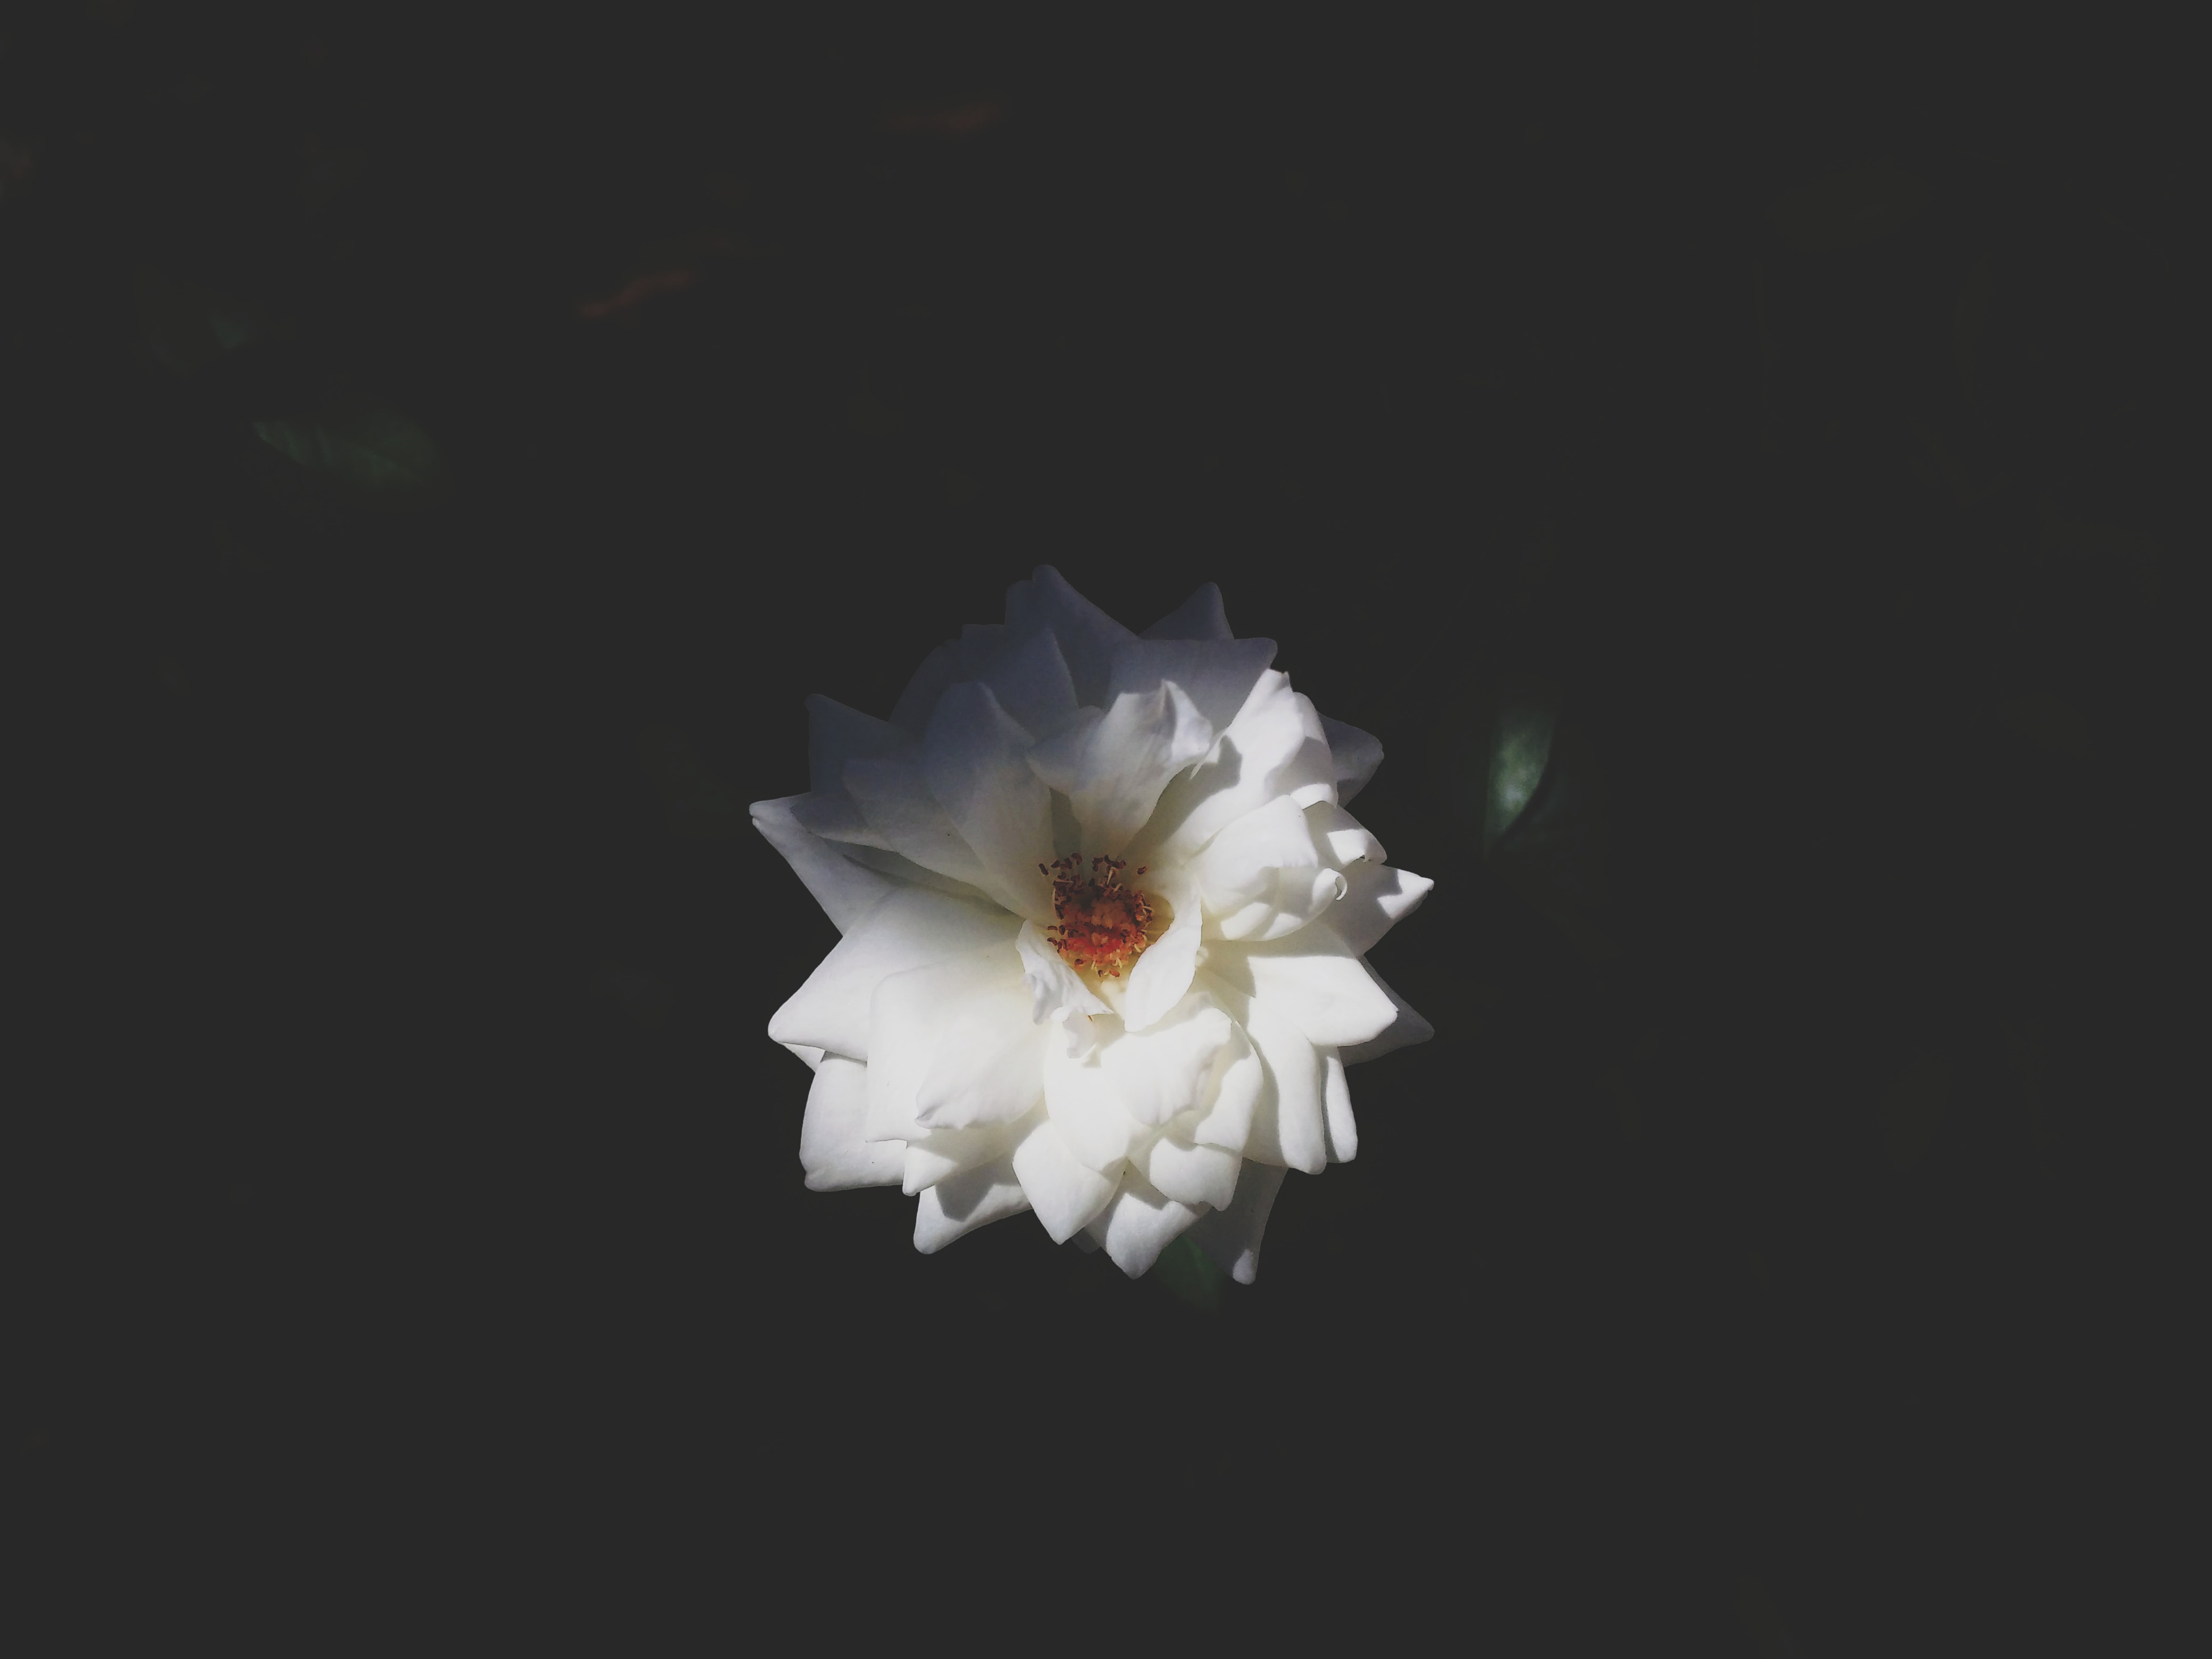 An overhead shot of a flower with silky white petals